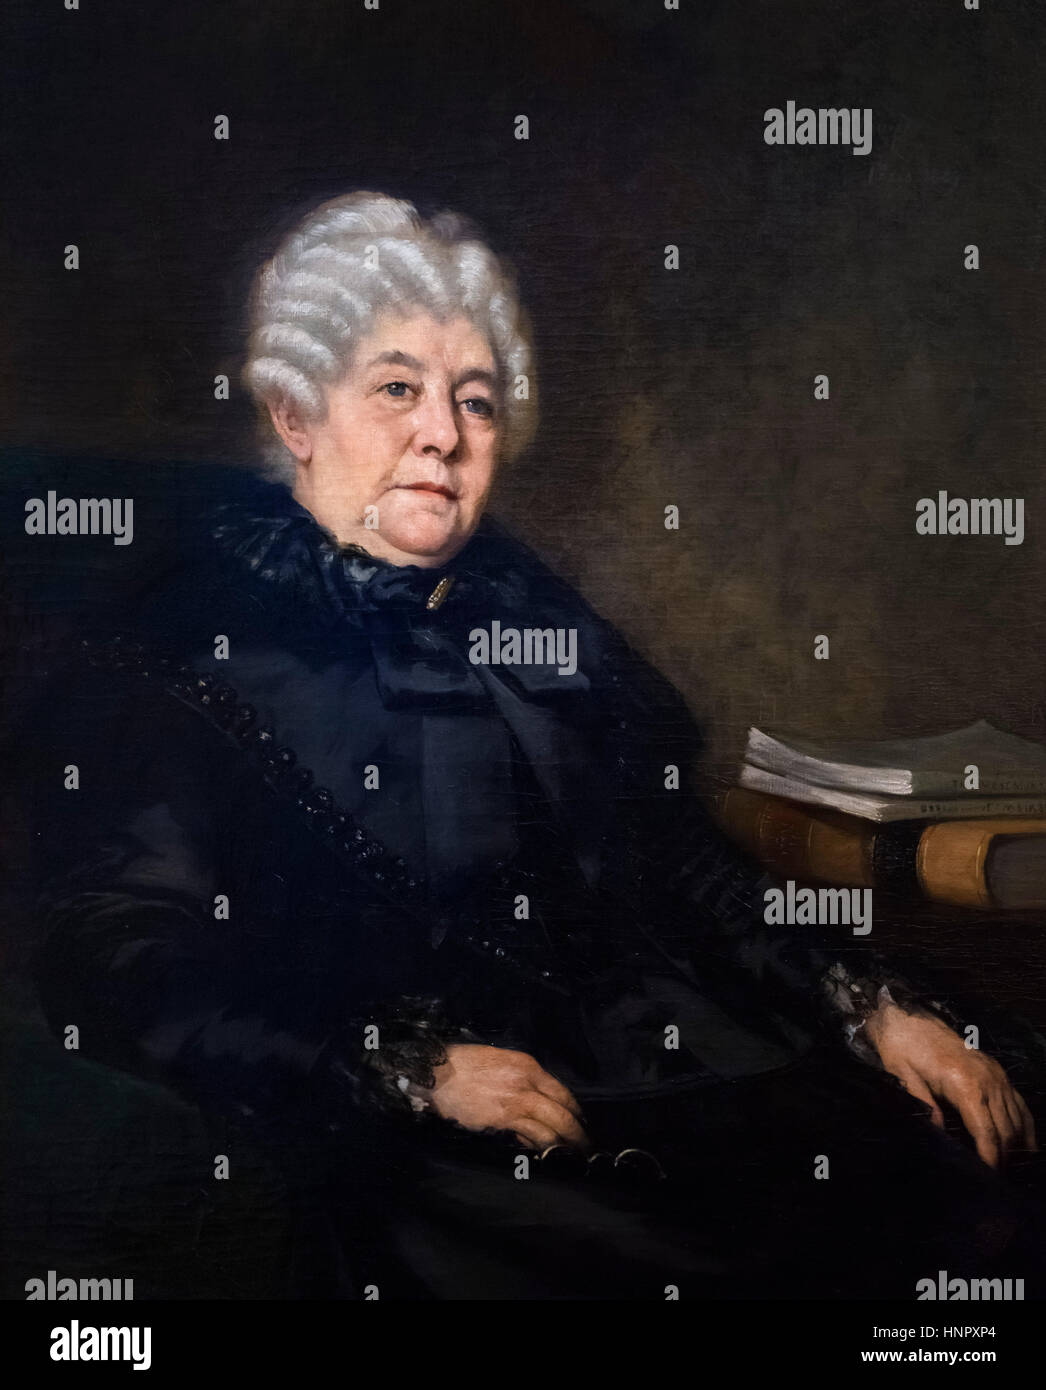 Elizabeth Cady Stanton (1815-1902), an American suffragist, social activist, abolitionist, and leading figure of - Stock Image